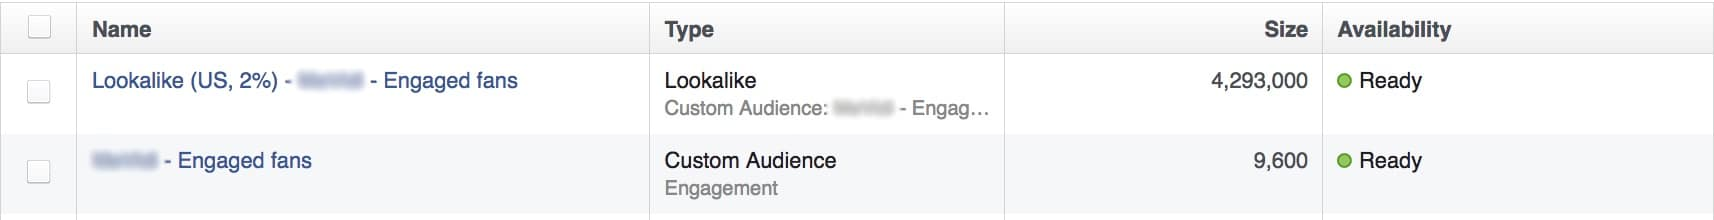 engagers and lookalike audiences